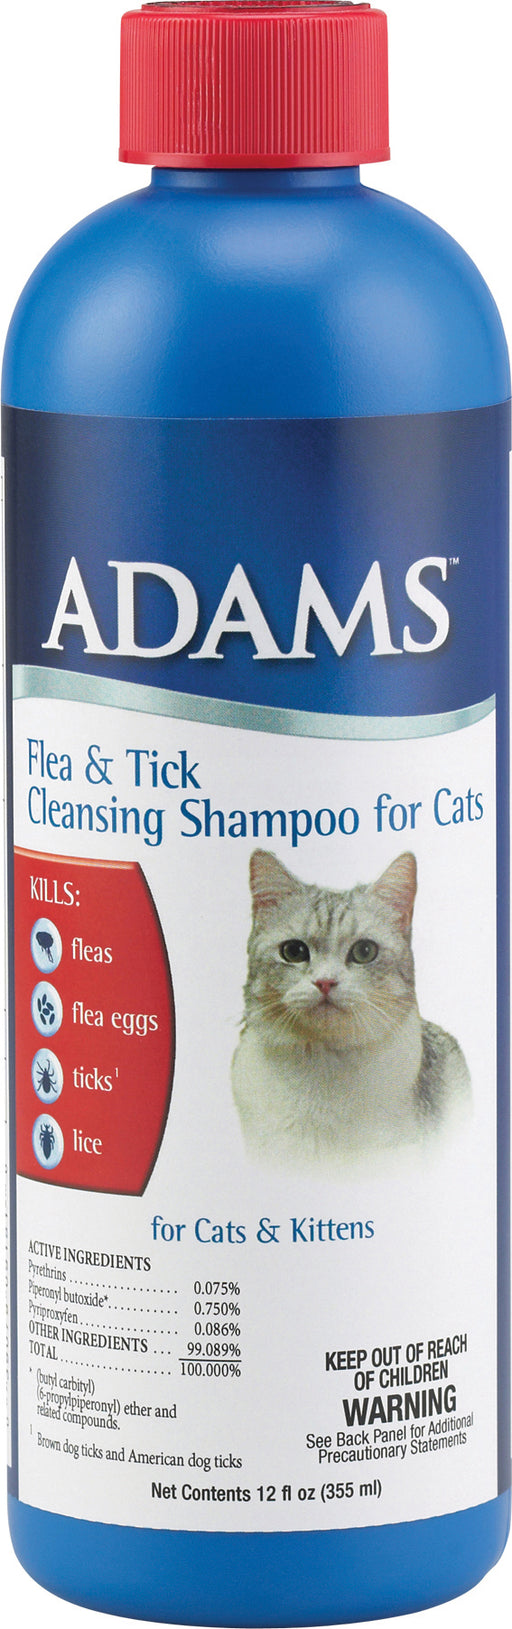 Farnam Pet - Adams Flea & Tick Cleansing Shampoo For Cats - J. Rose Global